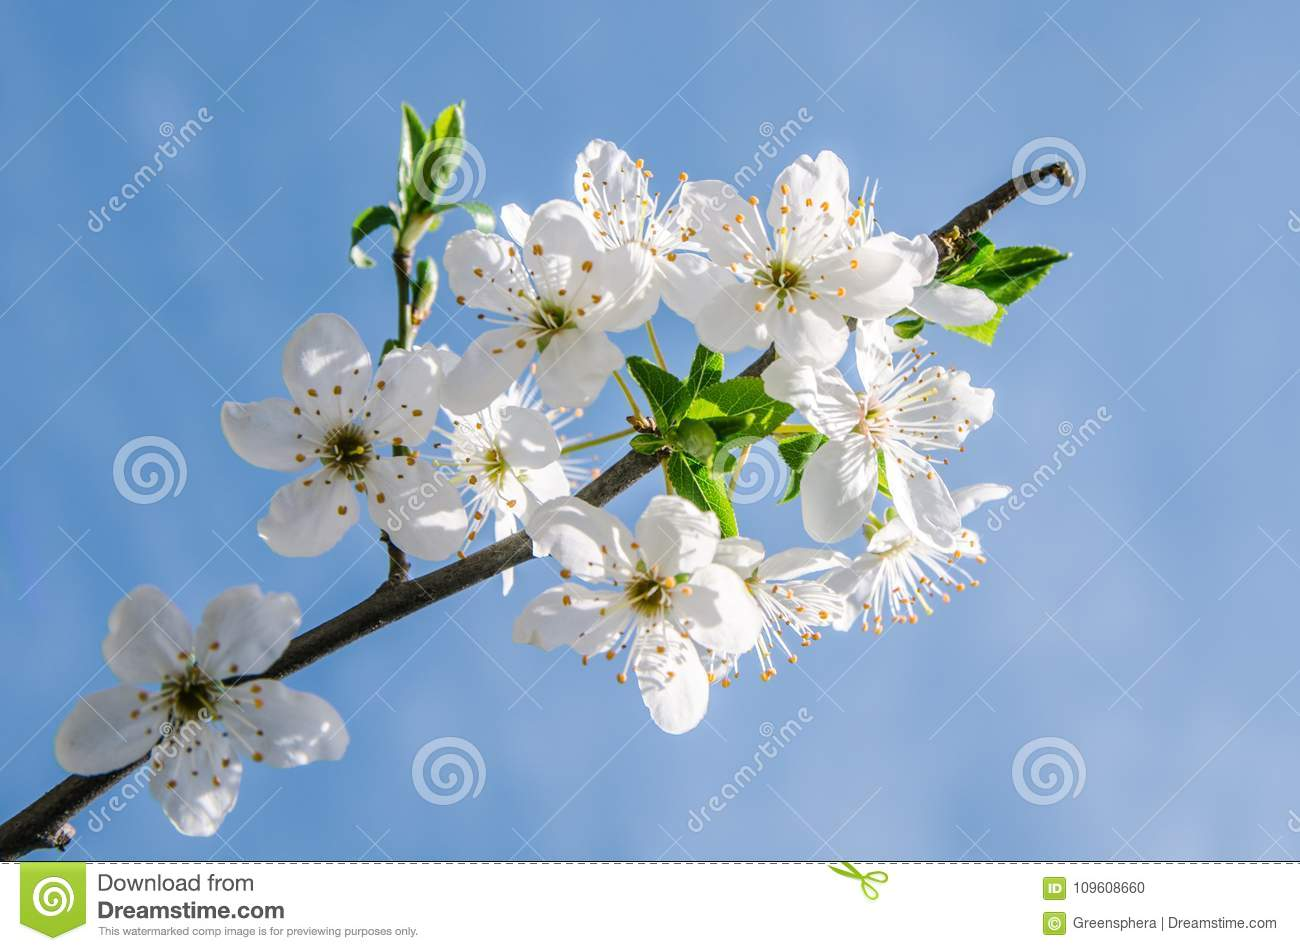 Apple Blossom Flowers In Spring Blooming On Young Tree Branch After